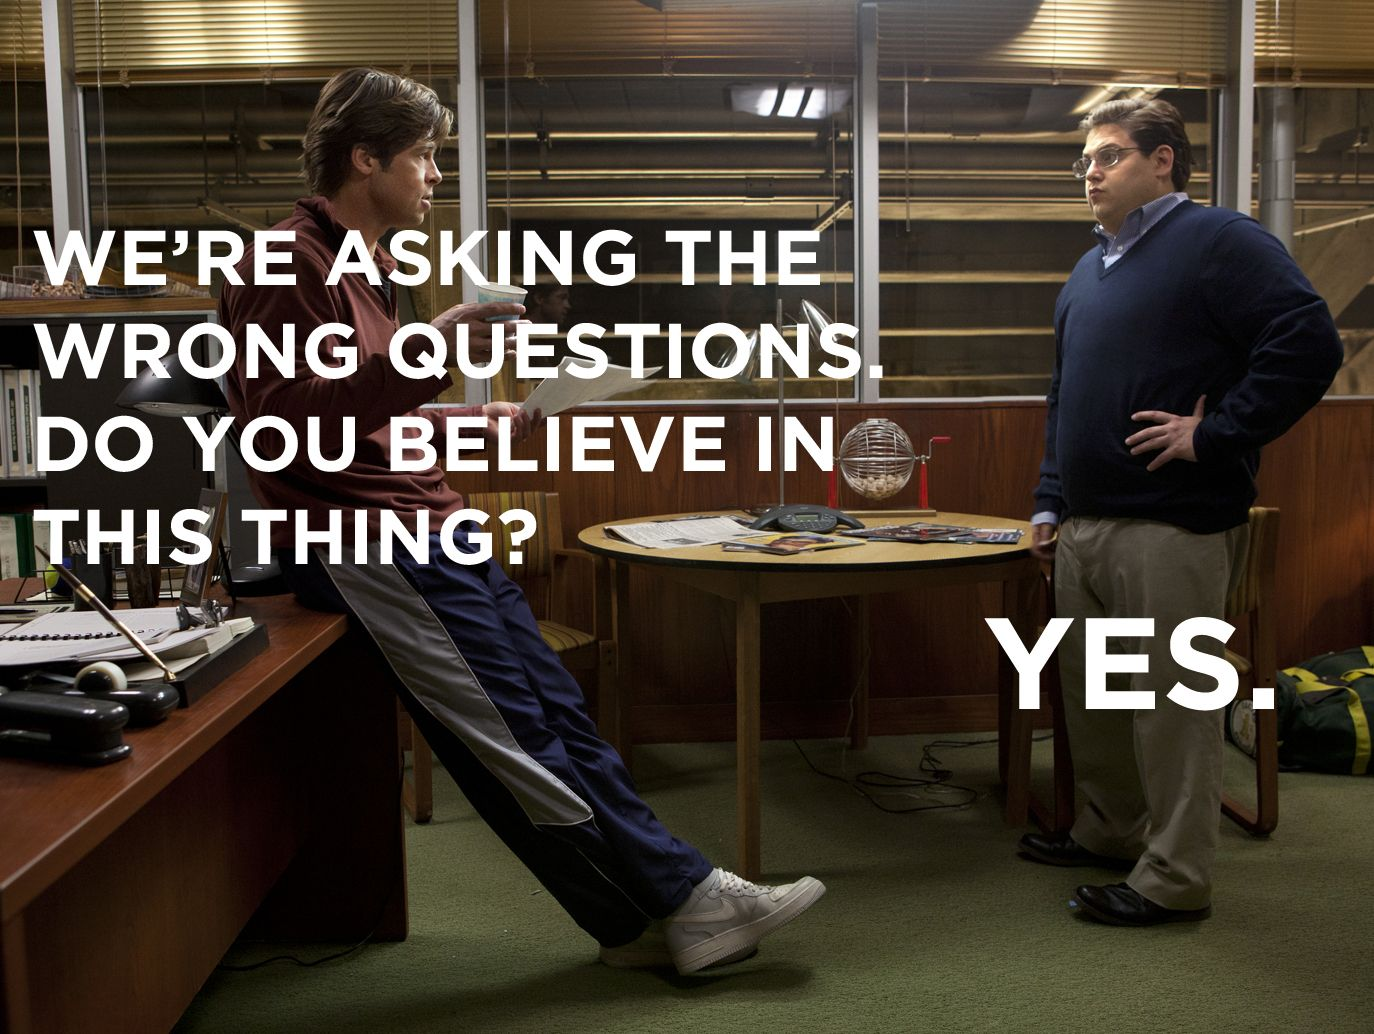 Moneyball Quotes This or that questions, Movie quotes